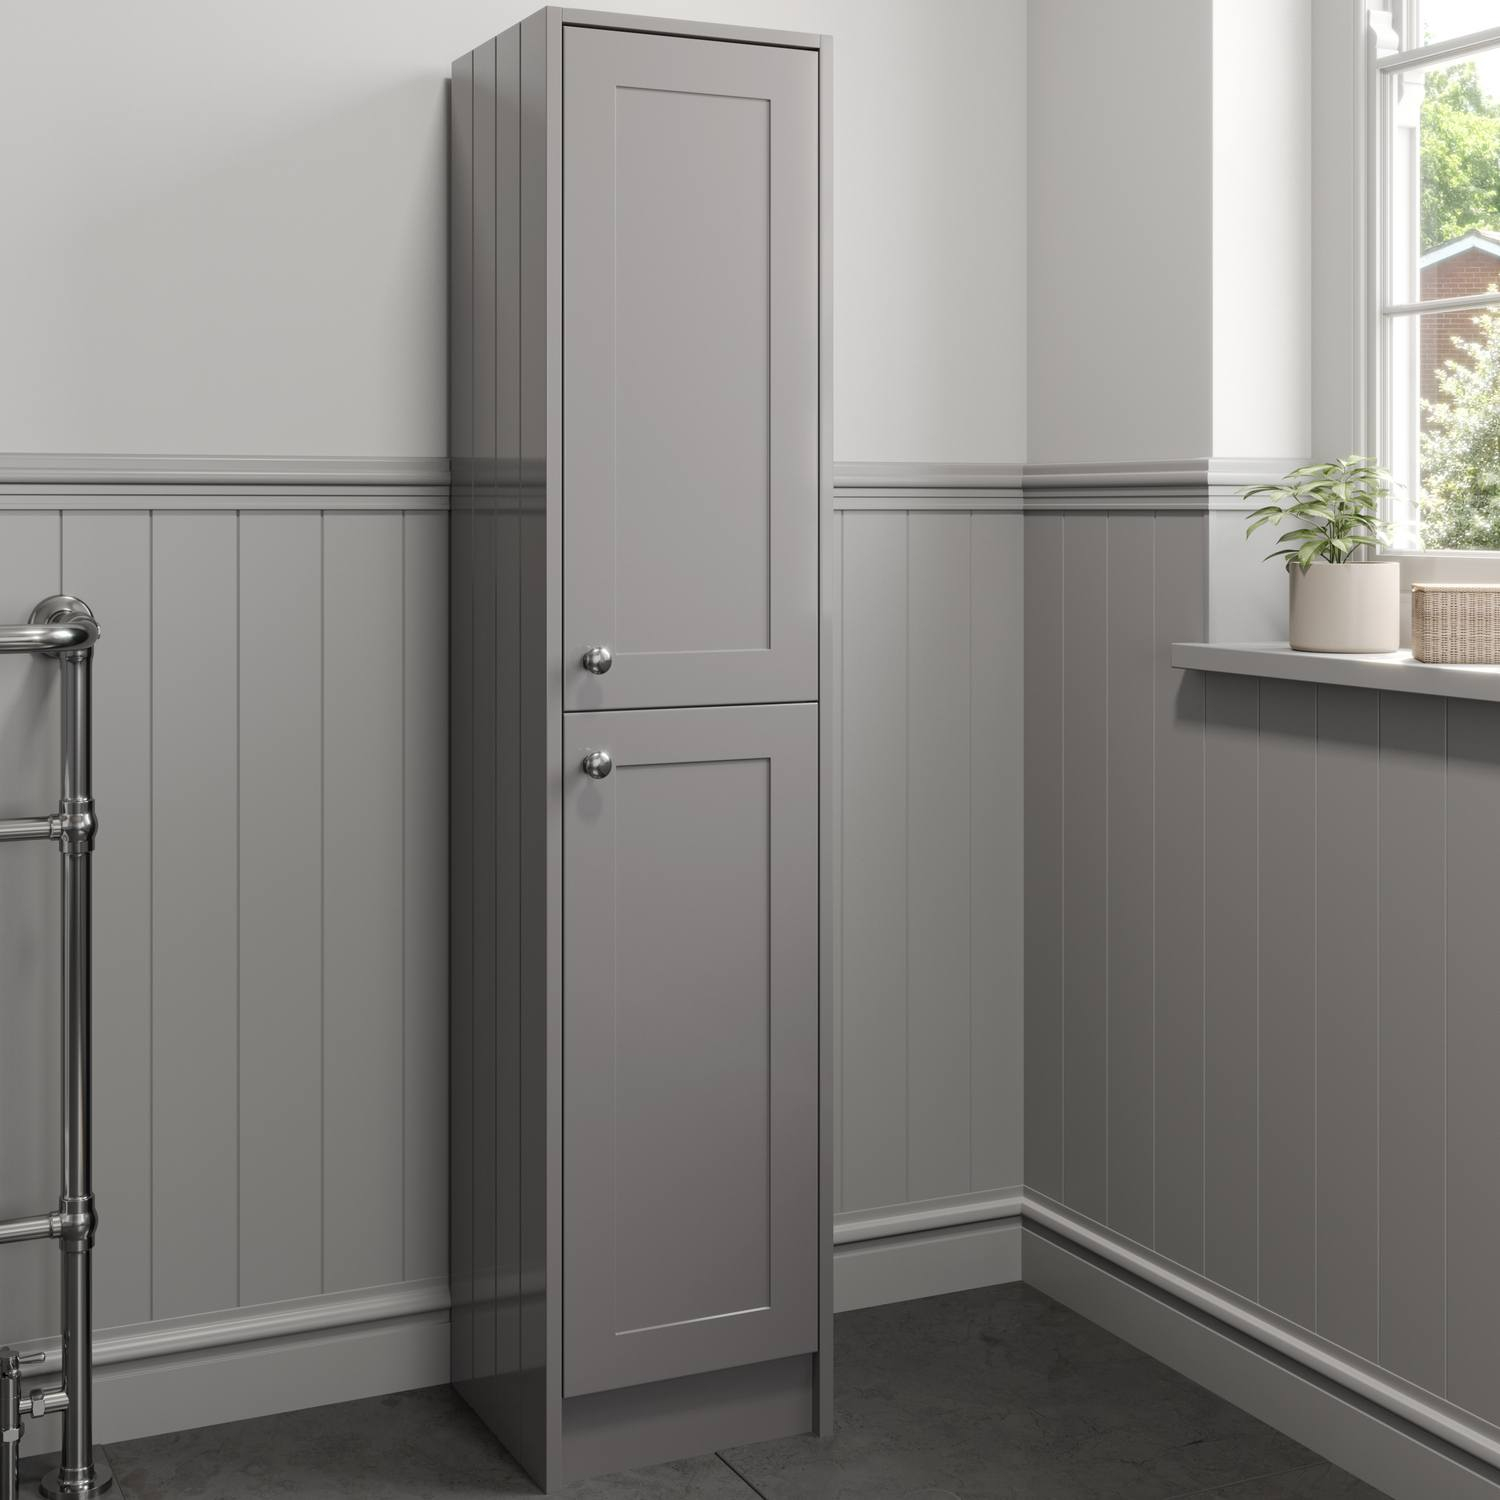 Details About 1600mm Tall Bathroom Storage Cabinet Cupboard Floorstanding Grey Traditional for dimensions 1500 X 1500